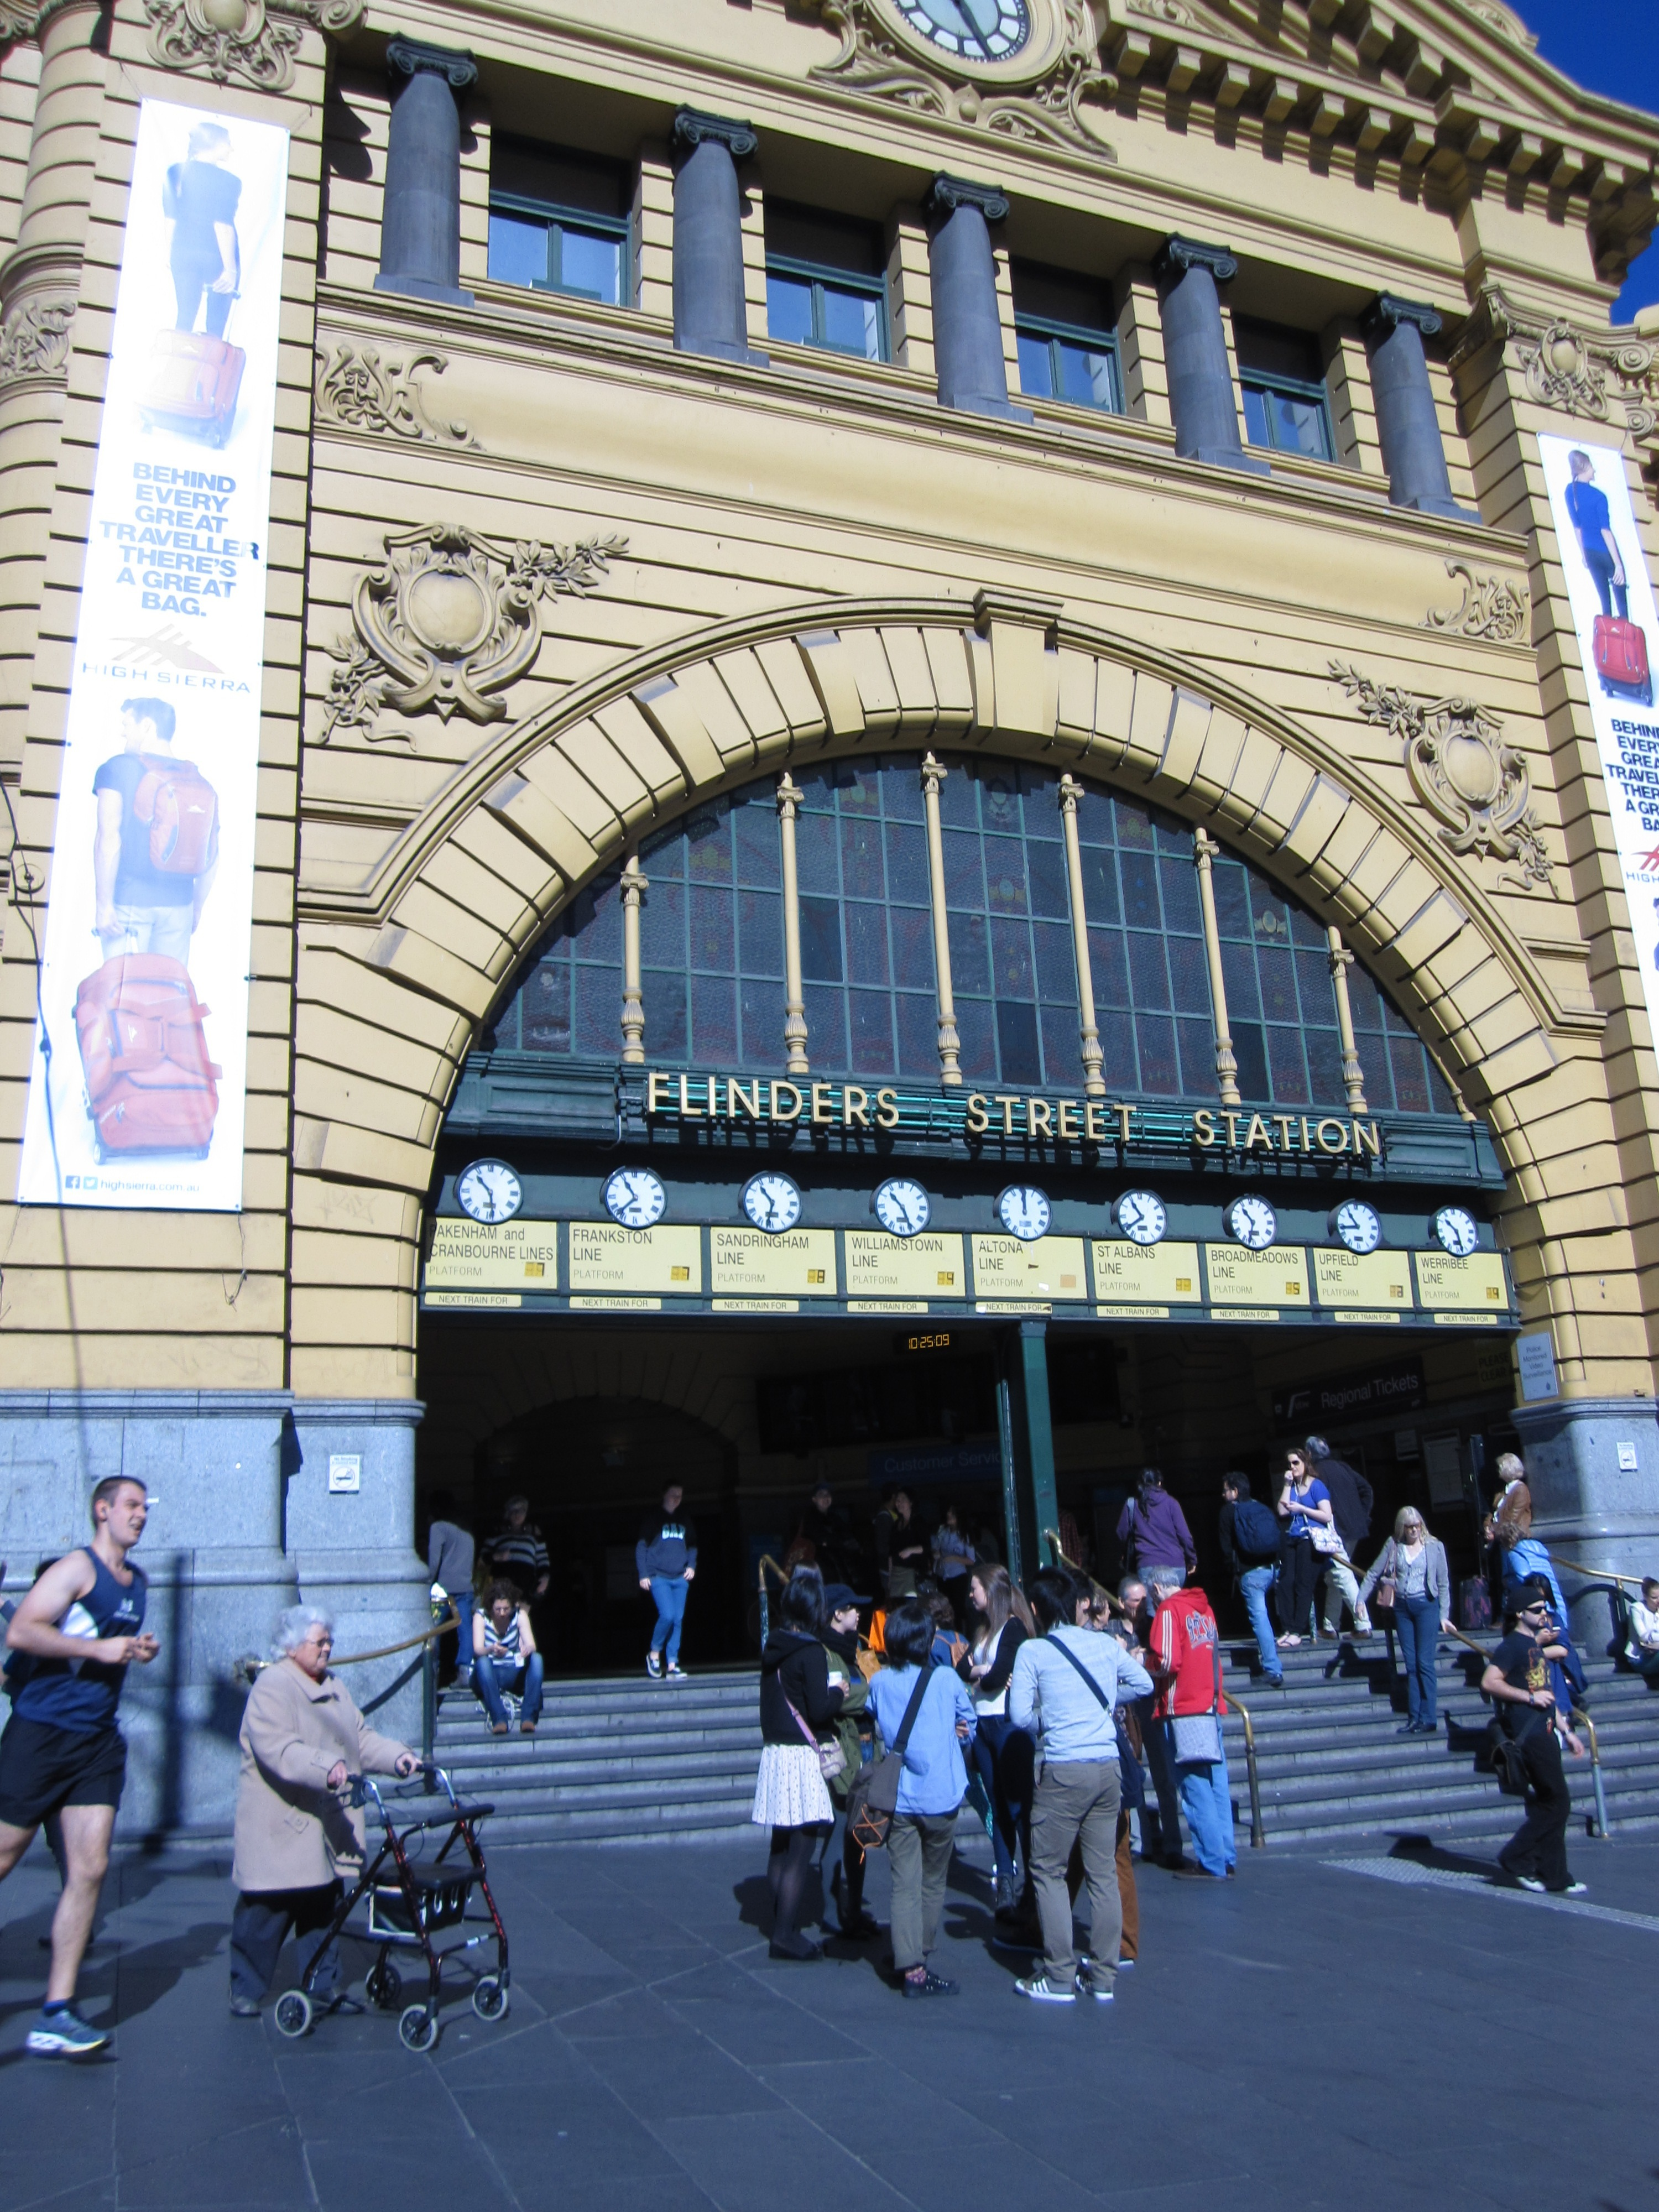 Meeting Under the Clocks in Melbourne - Melbourne